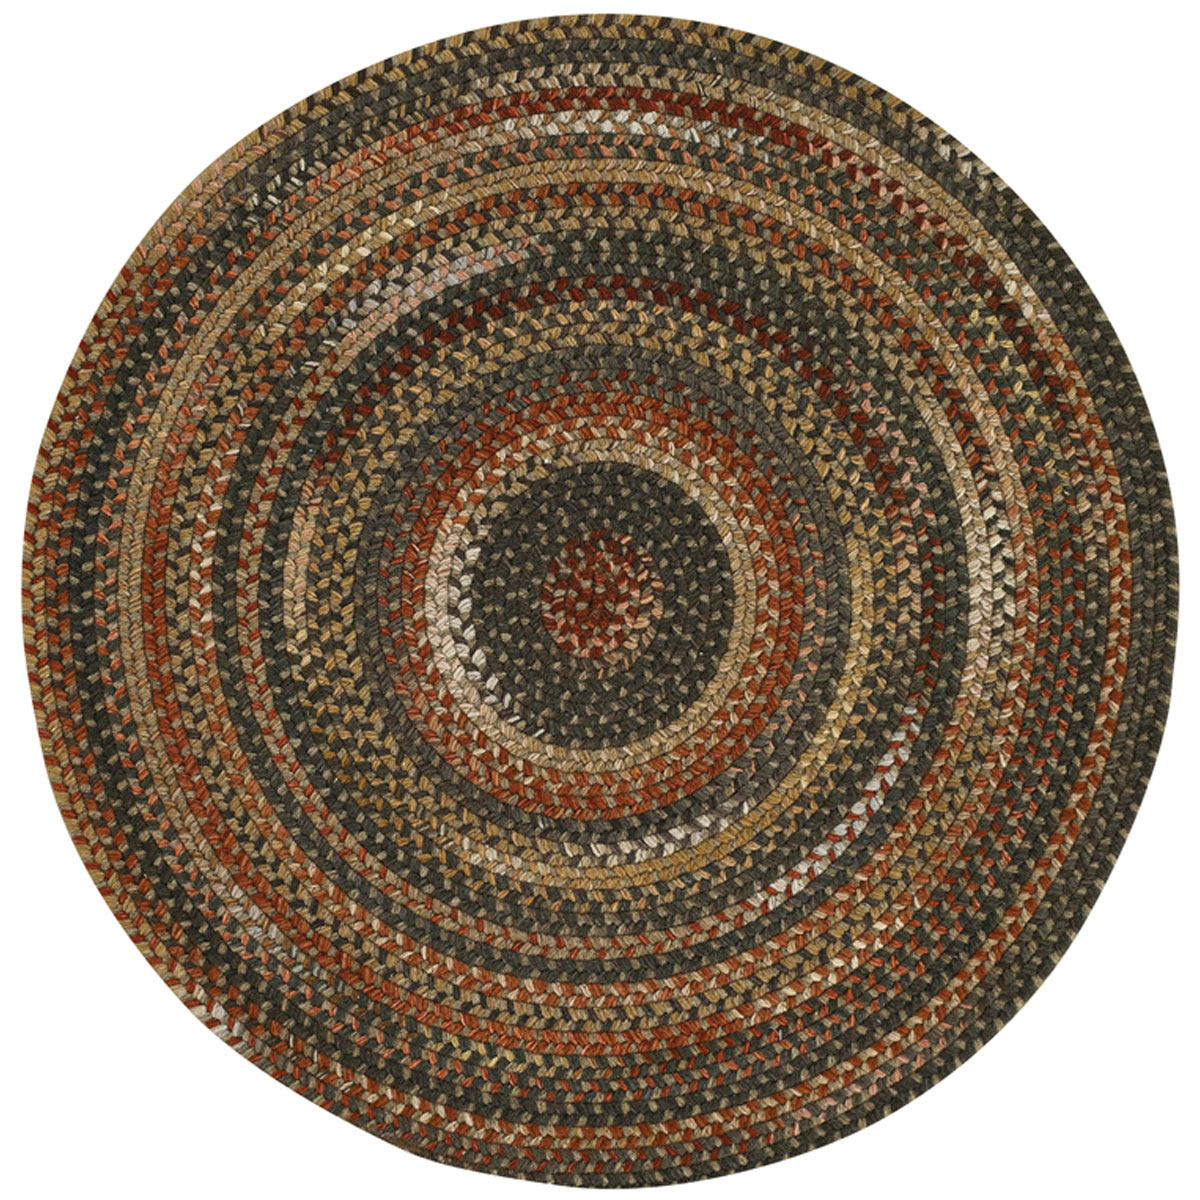 Braided Wool Rugs By Capel